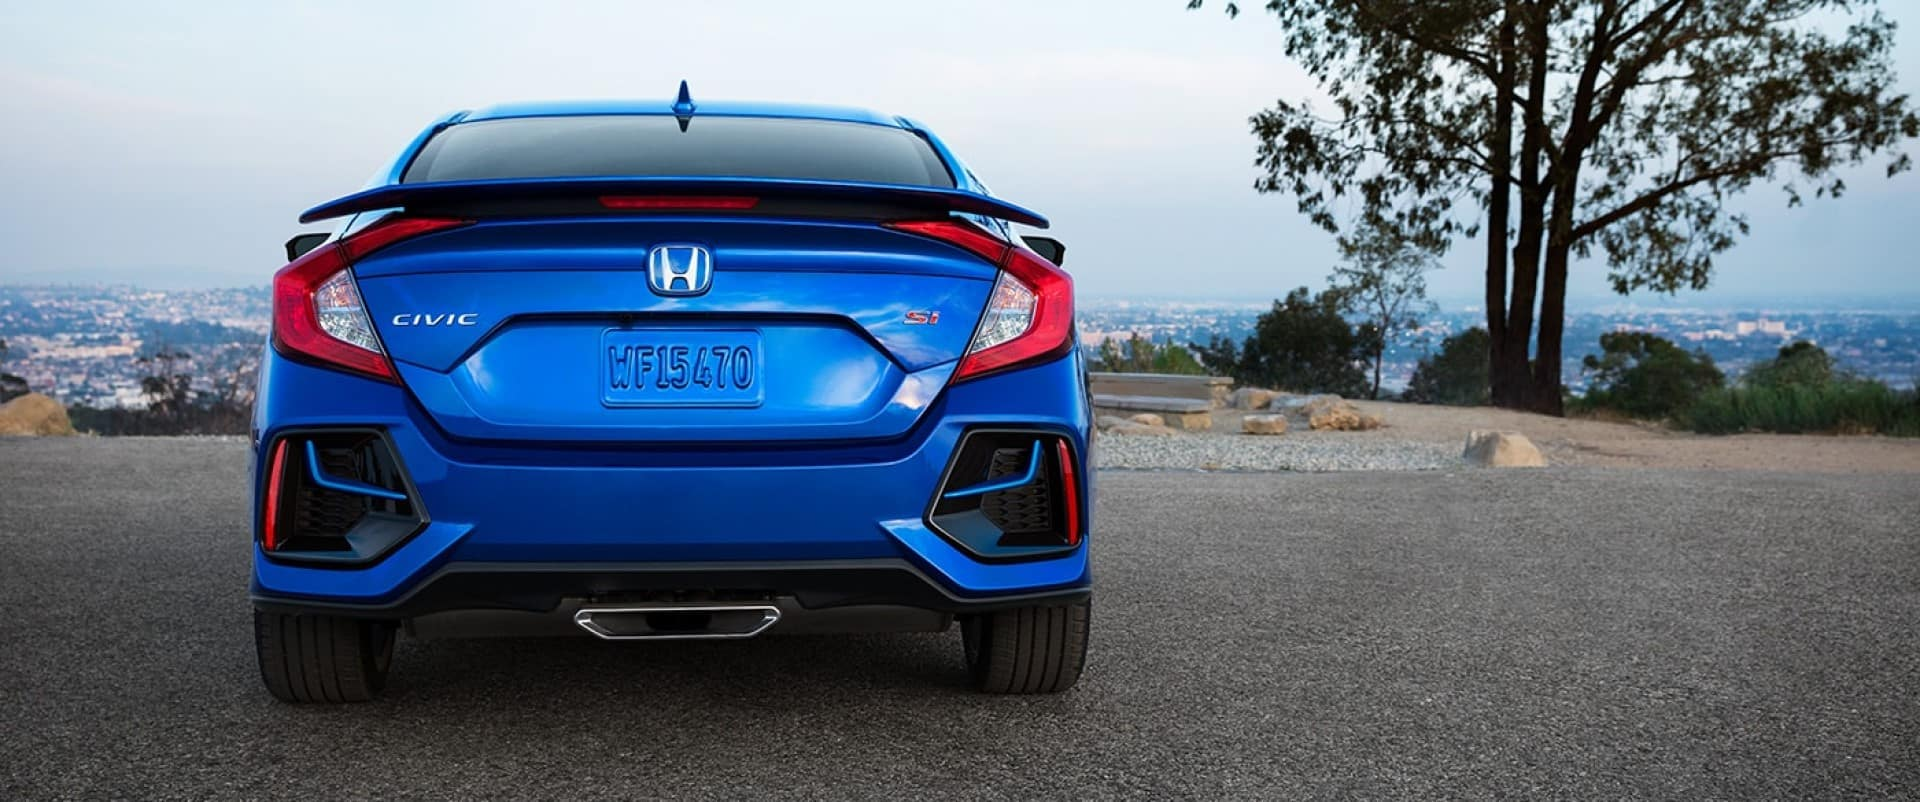 Honda_Civic_Si_Sedan_Rear_View